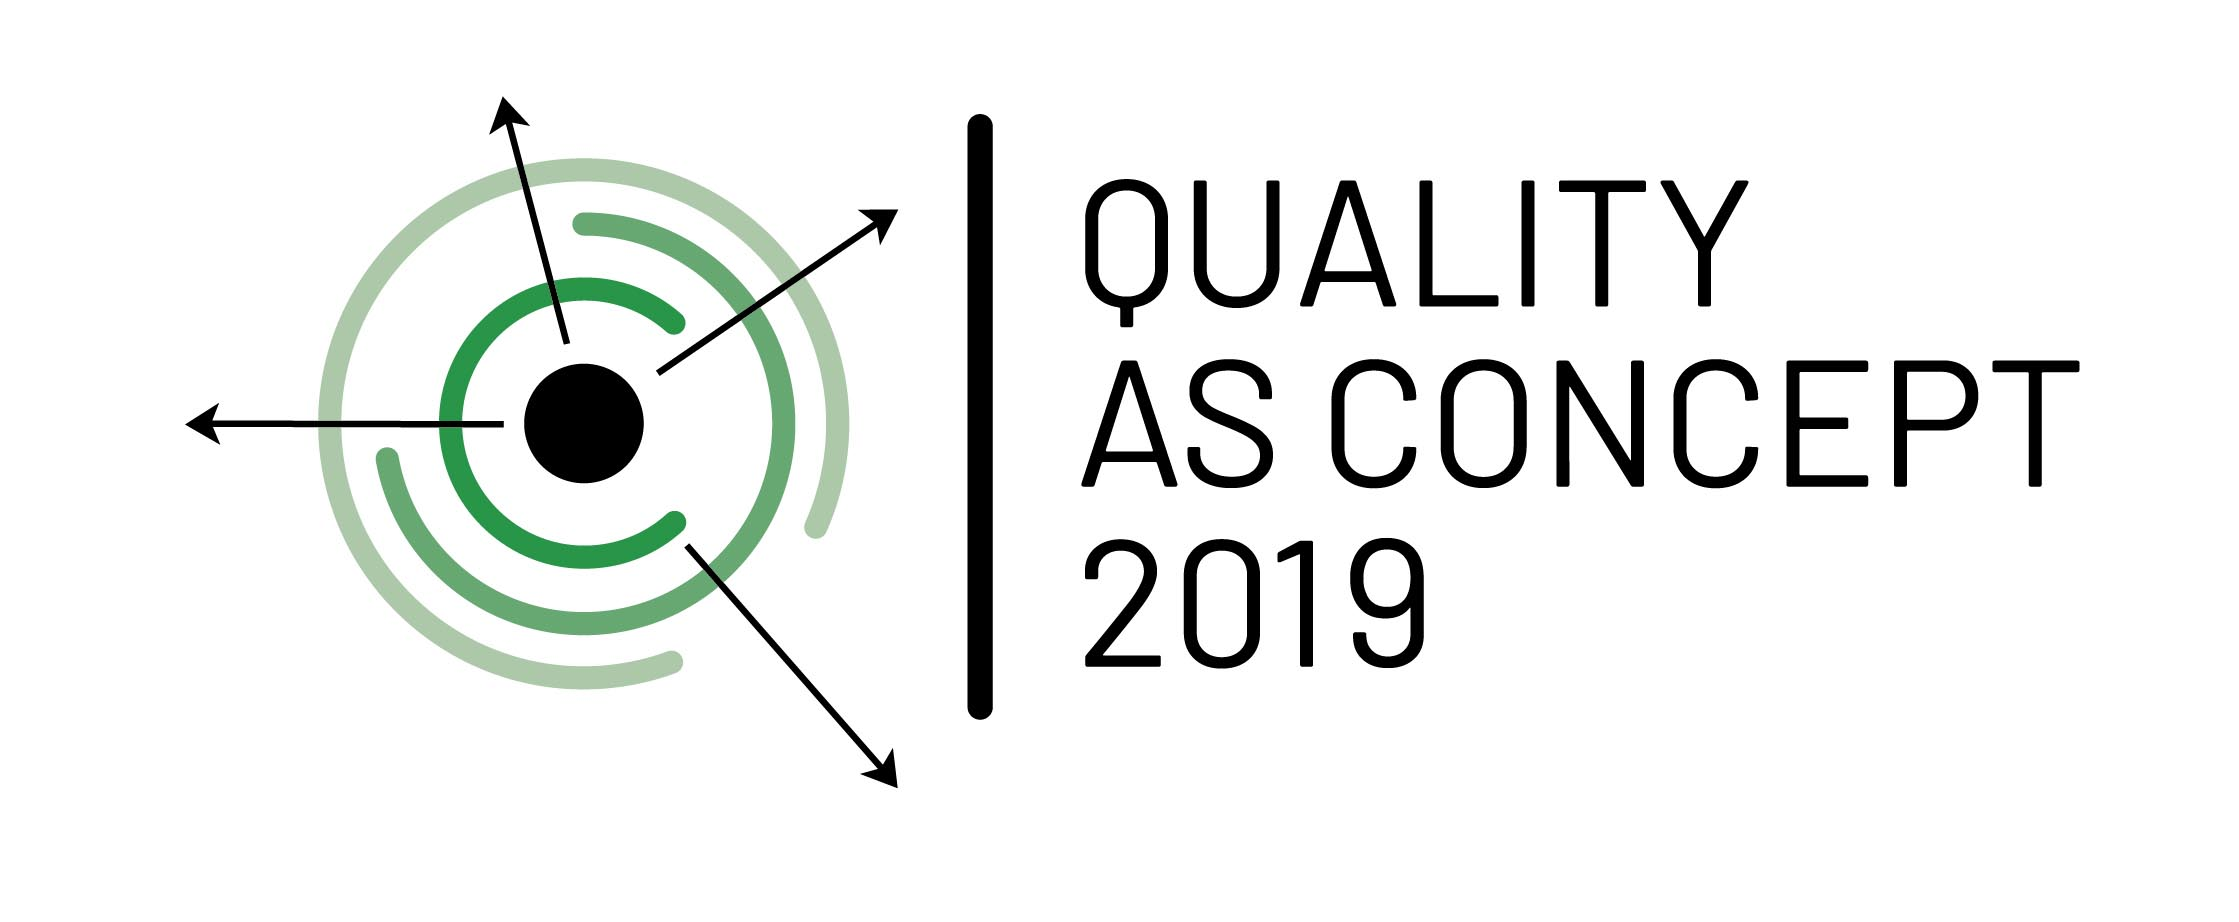 Quality as concept LOGO jpg 2019